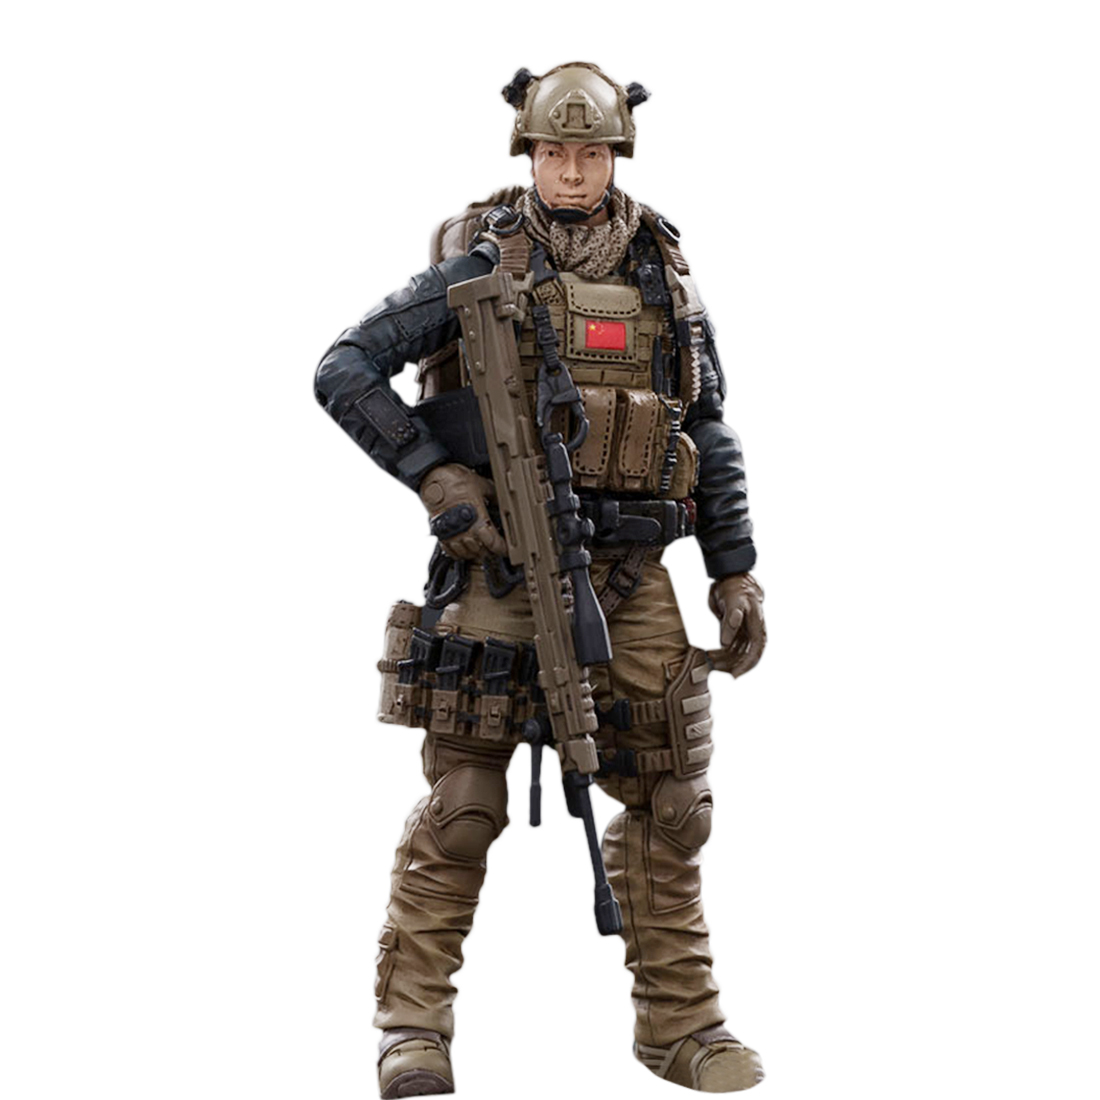 3.75 Inches 1:18 Realistic Removable Action Figure Soldier Model Collection - PLA Marine Corps Soldier 3 Type Gift For Boys